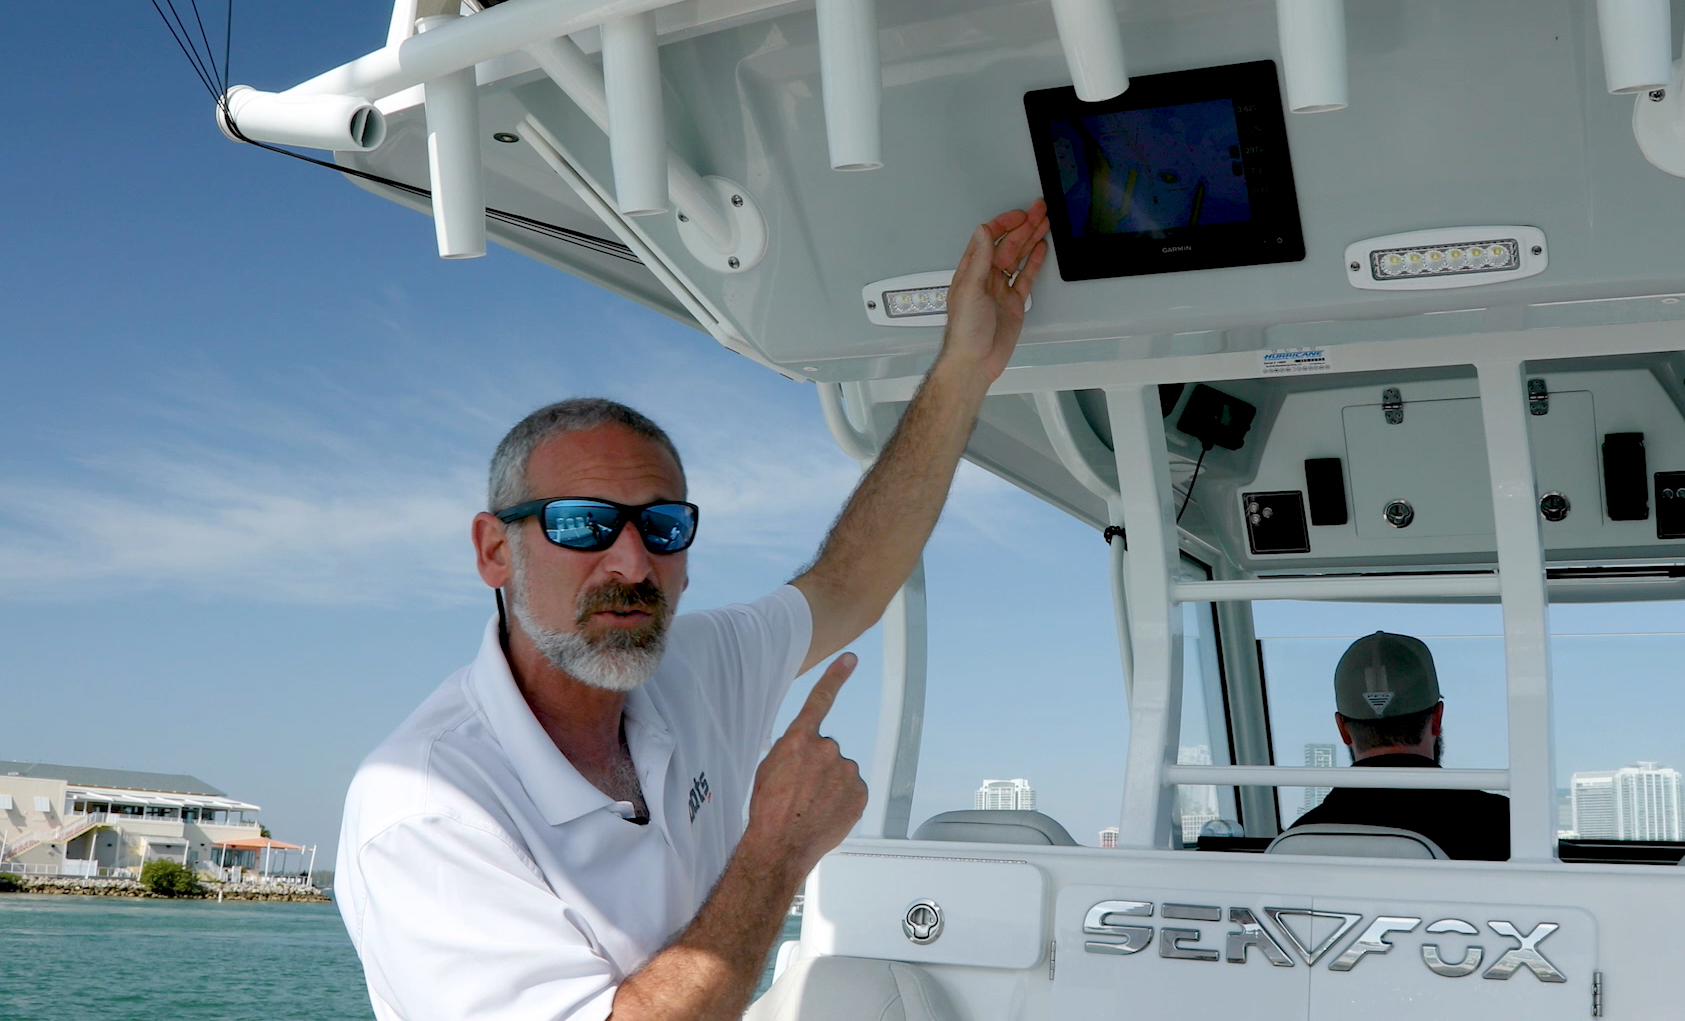 Best Multifunction Displays MFD for boats in 2020